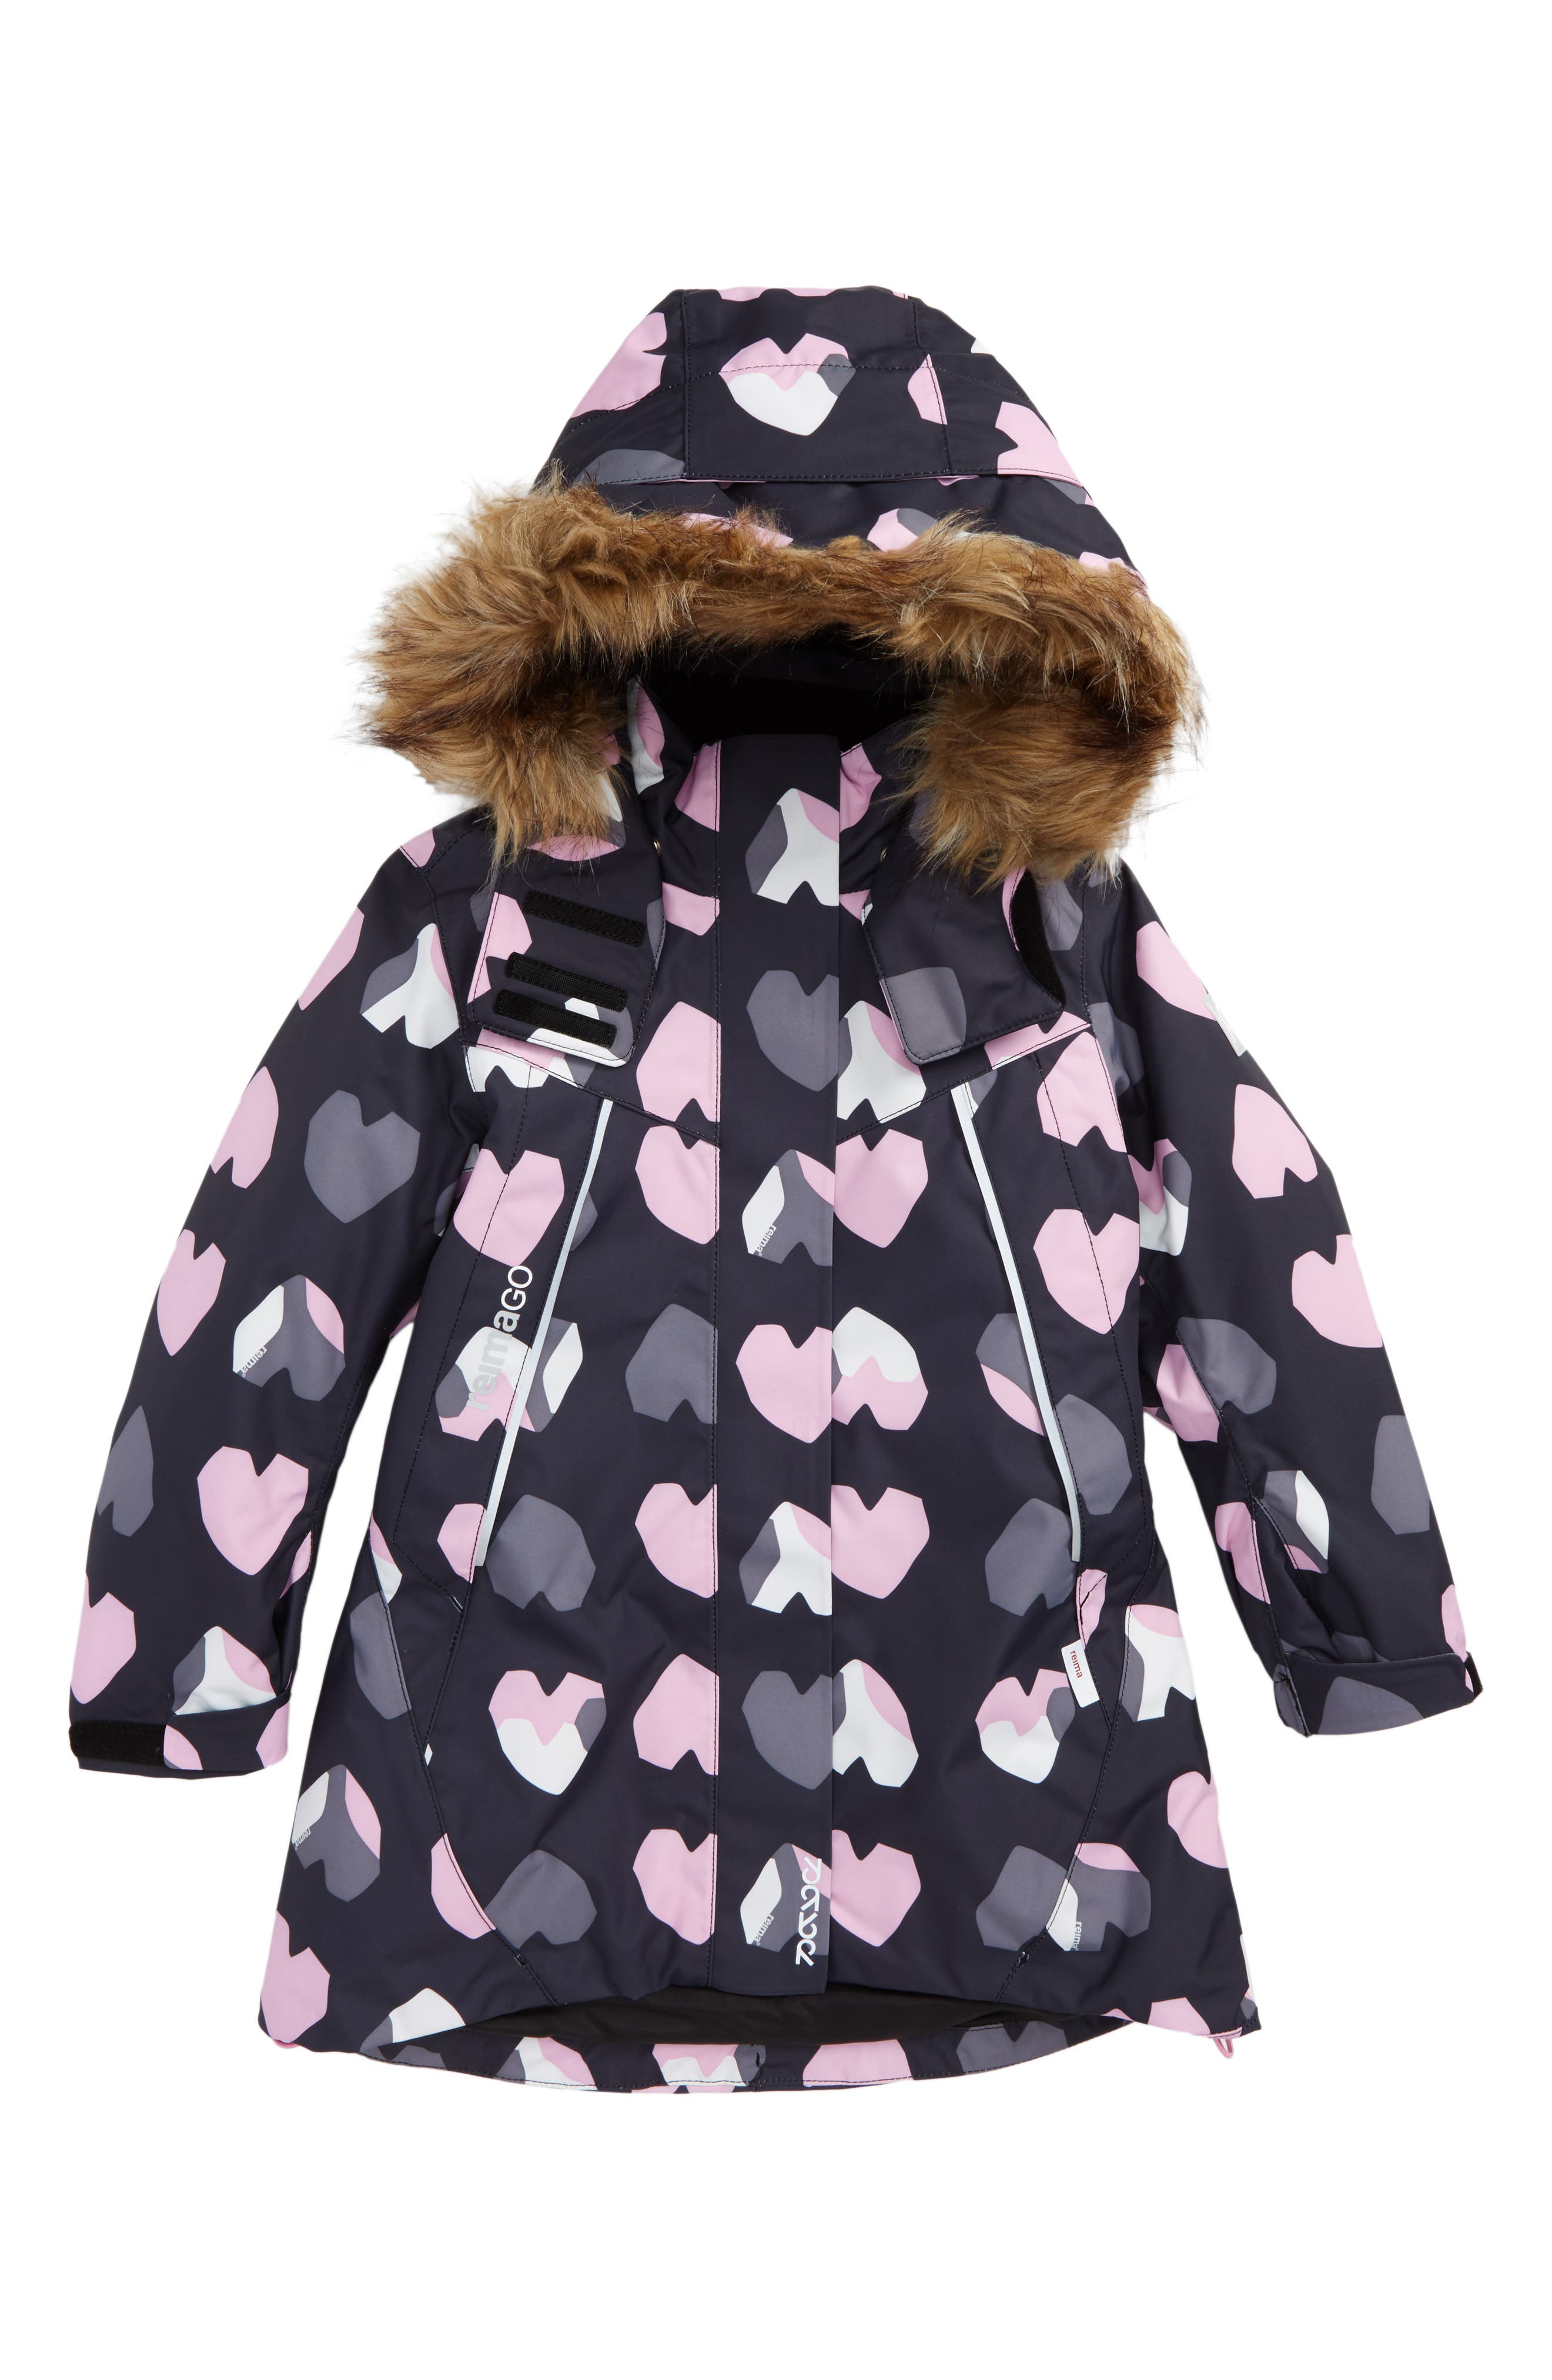 Alternate Image 1 Selected - Reima Reimatec® Waterproof Hooded A-Line Jacket with Faux Fur Trim (Toddler Girls & Little Girls)